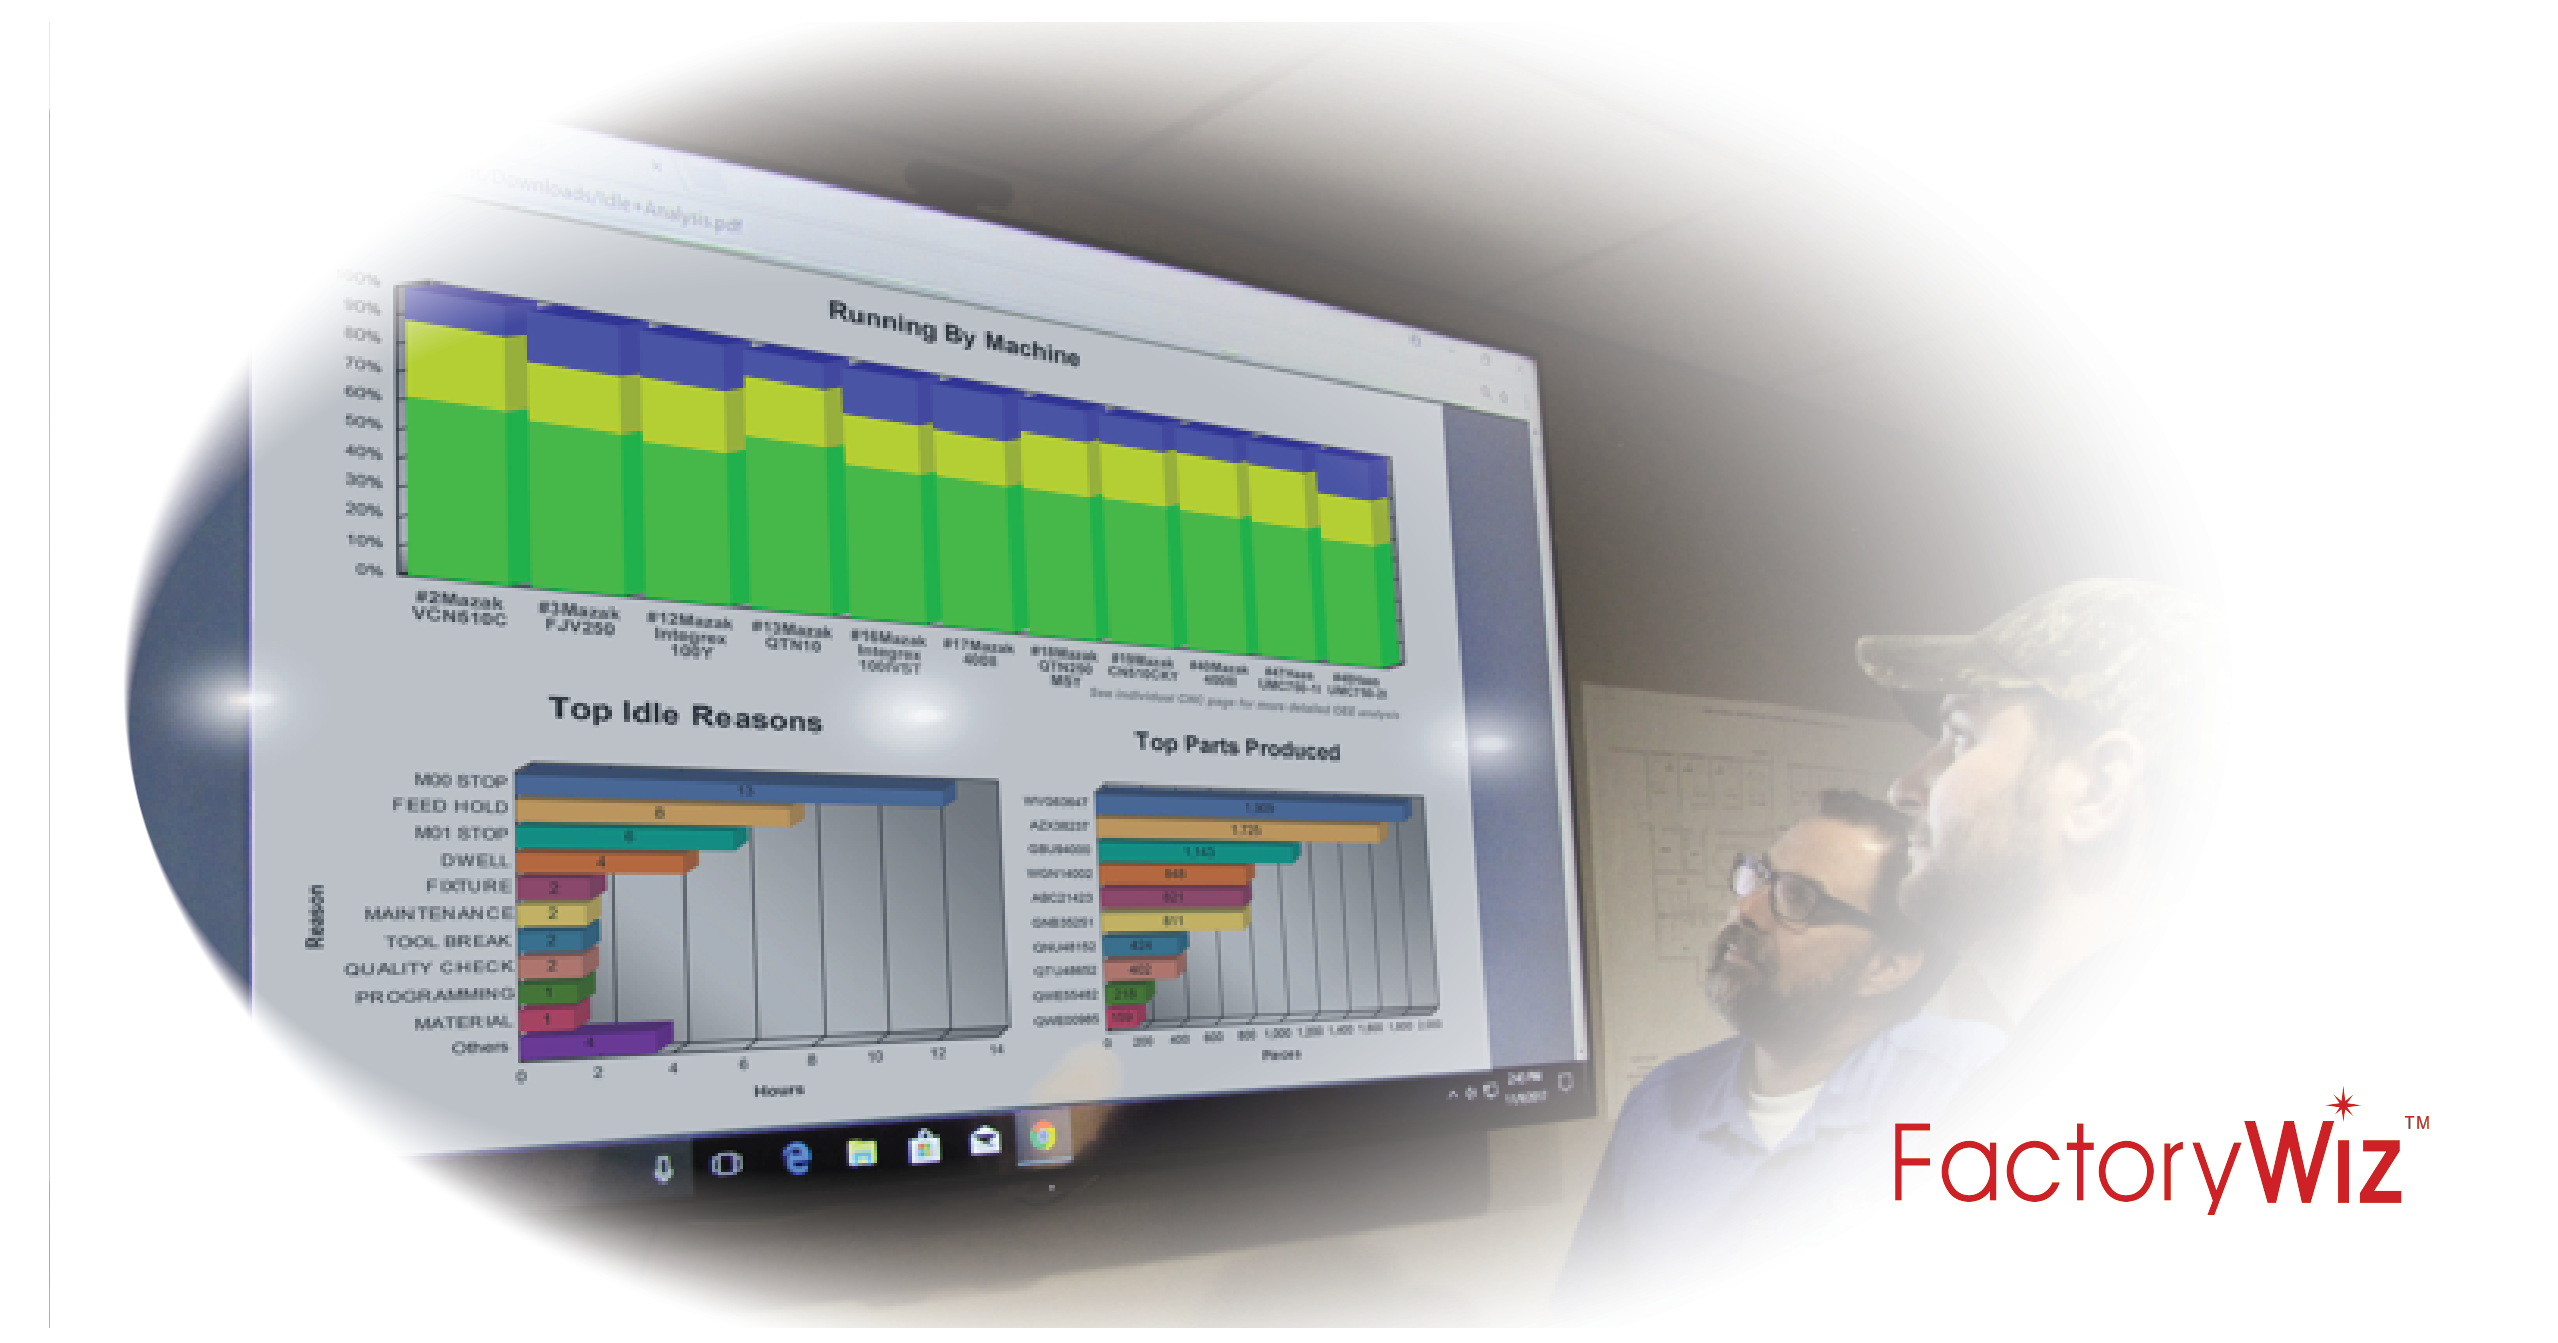 When Out To Improve Productivity, Start With TV Dashboards